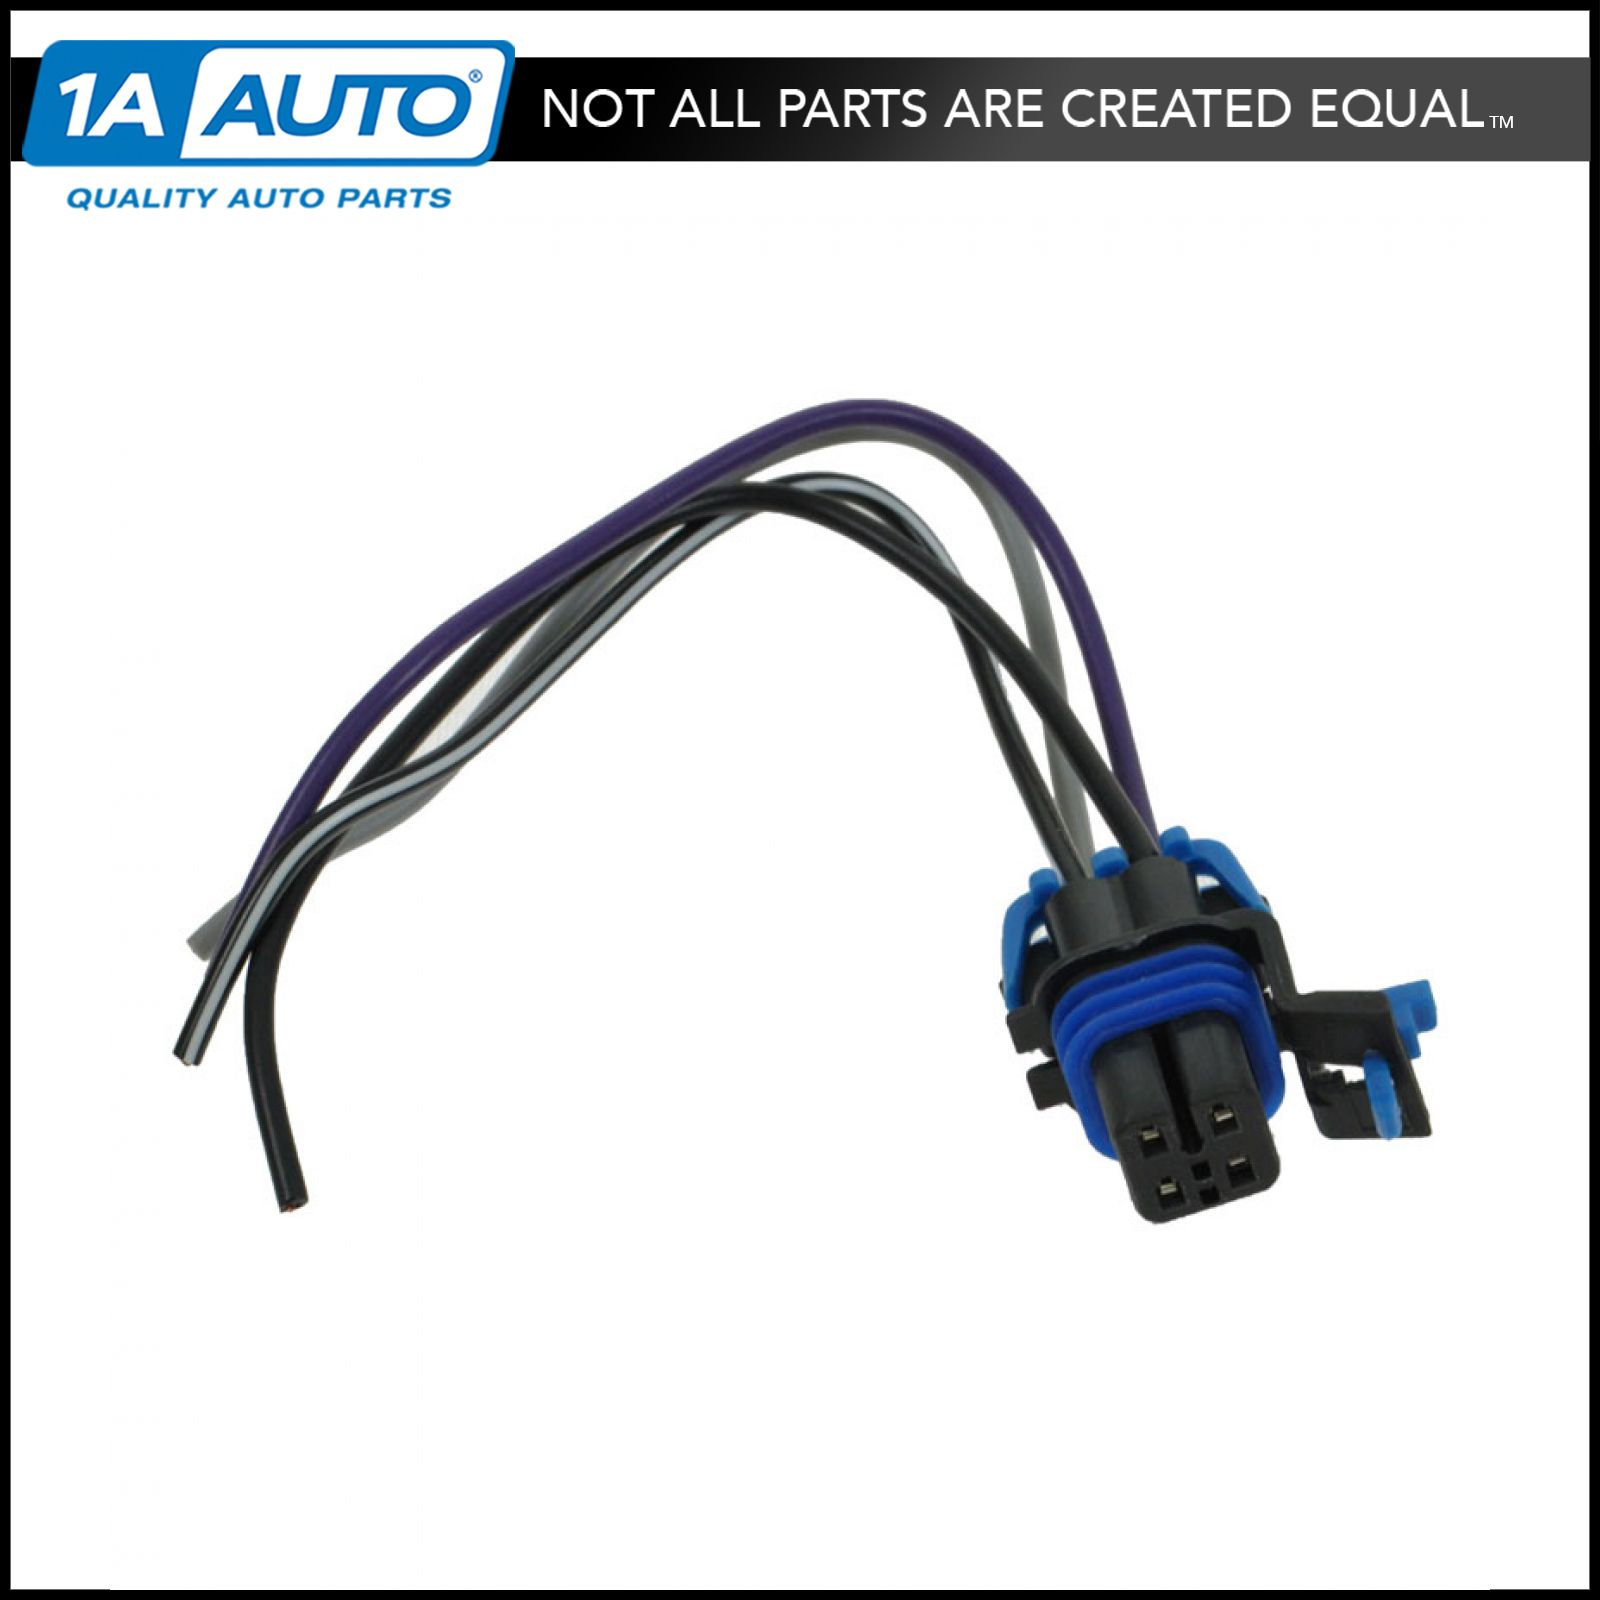 fuel pump wiring harness with square connector 4 wire pigtail for 2001 Mustang Wiring Harness fuel pump wiring harness with square connector 4 wire pigtail for chevy gm